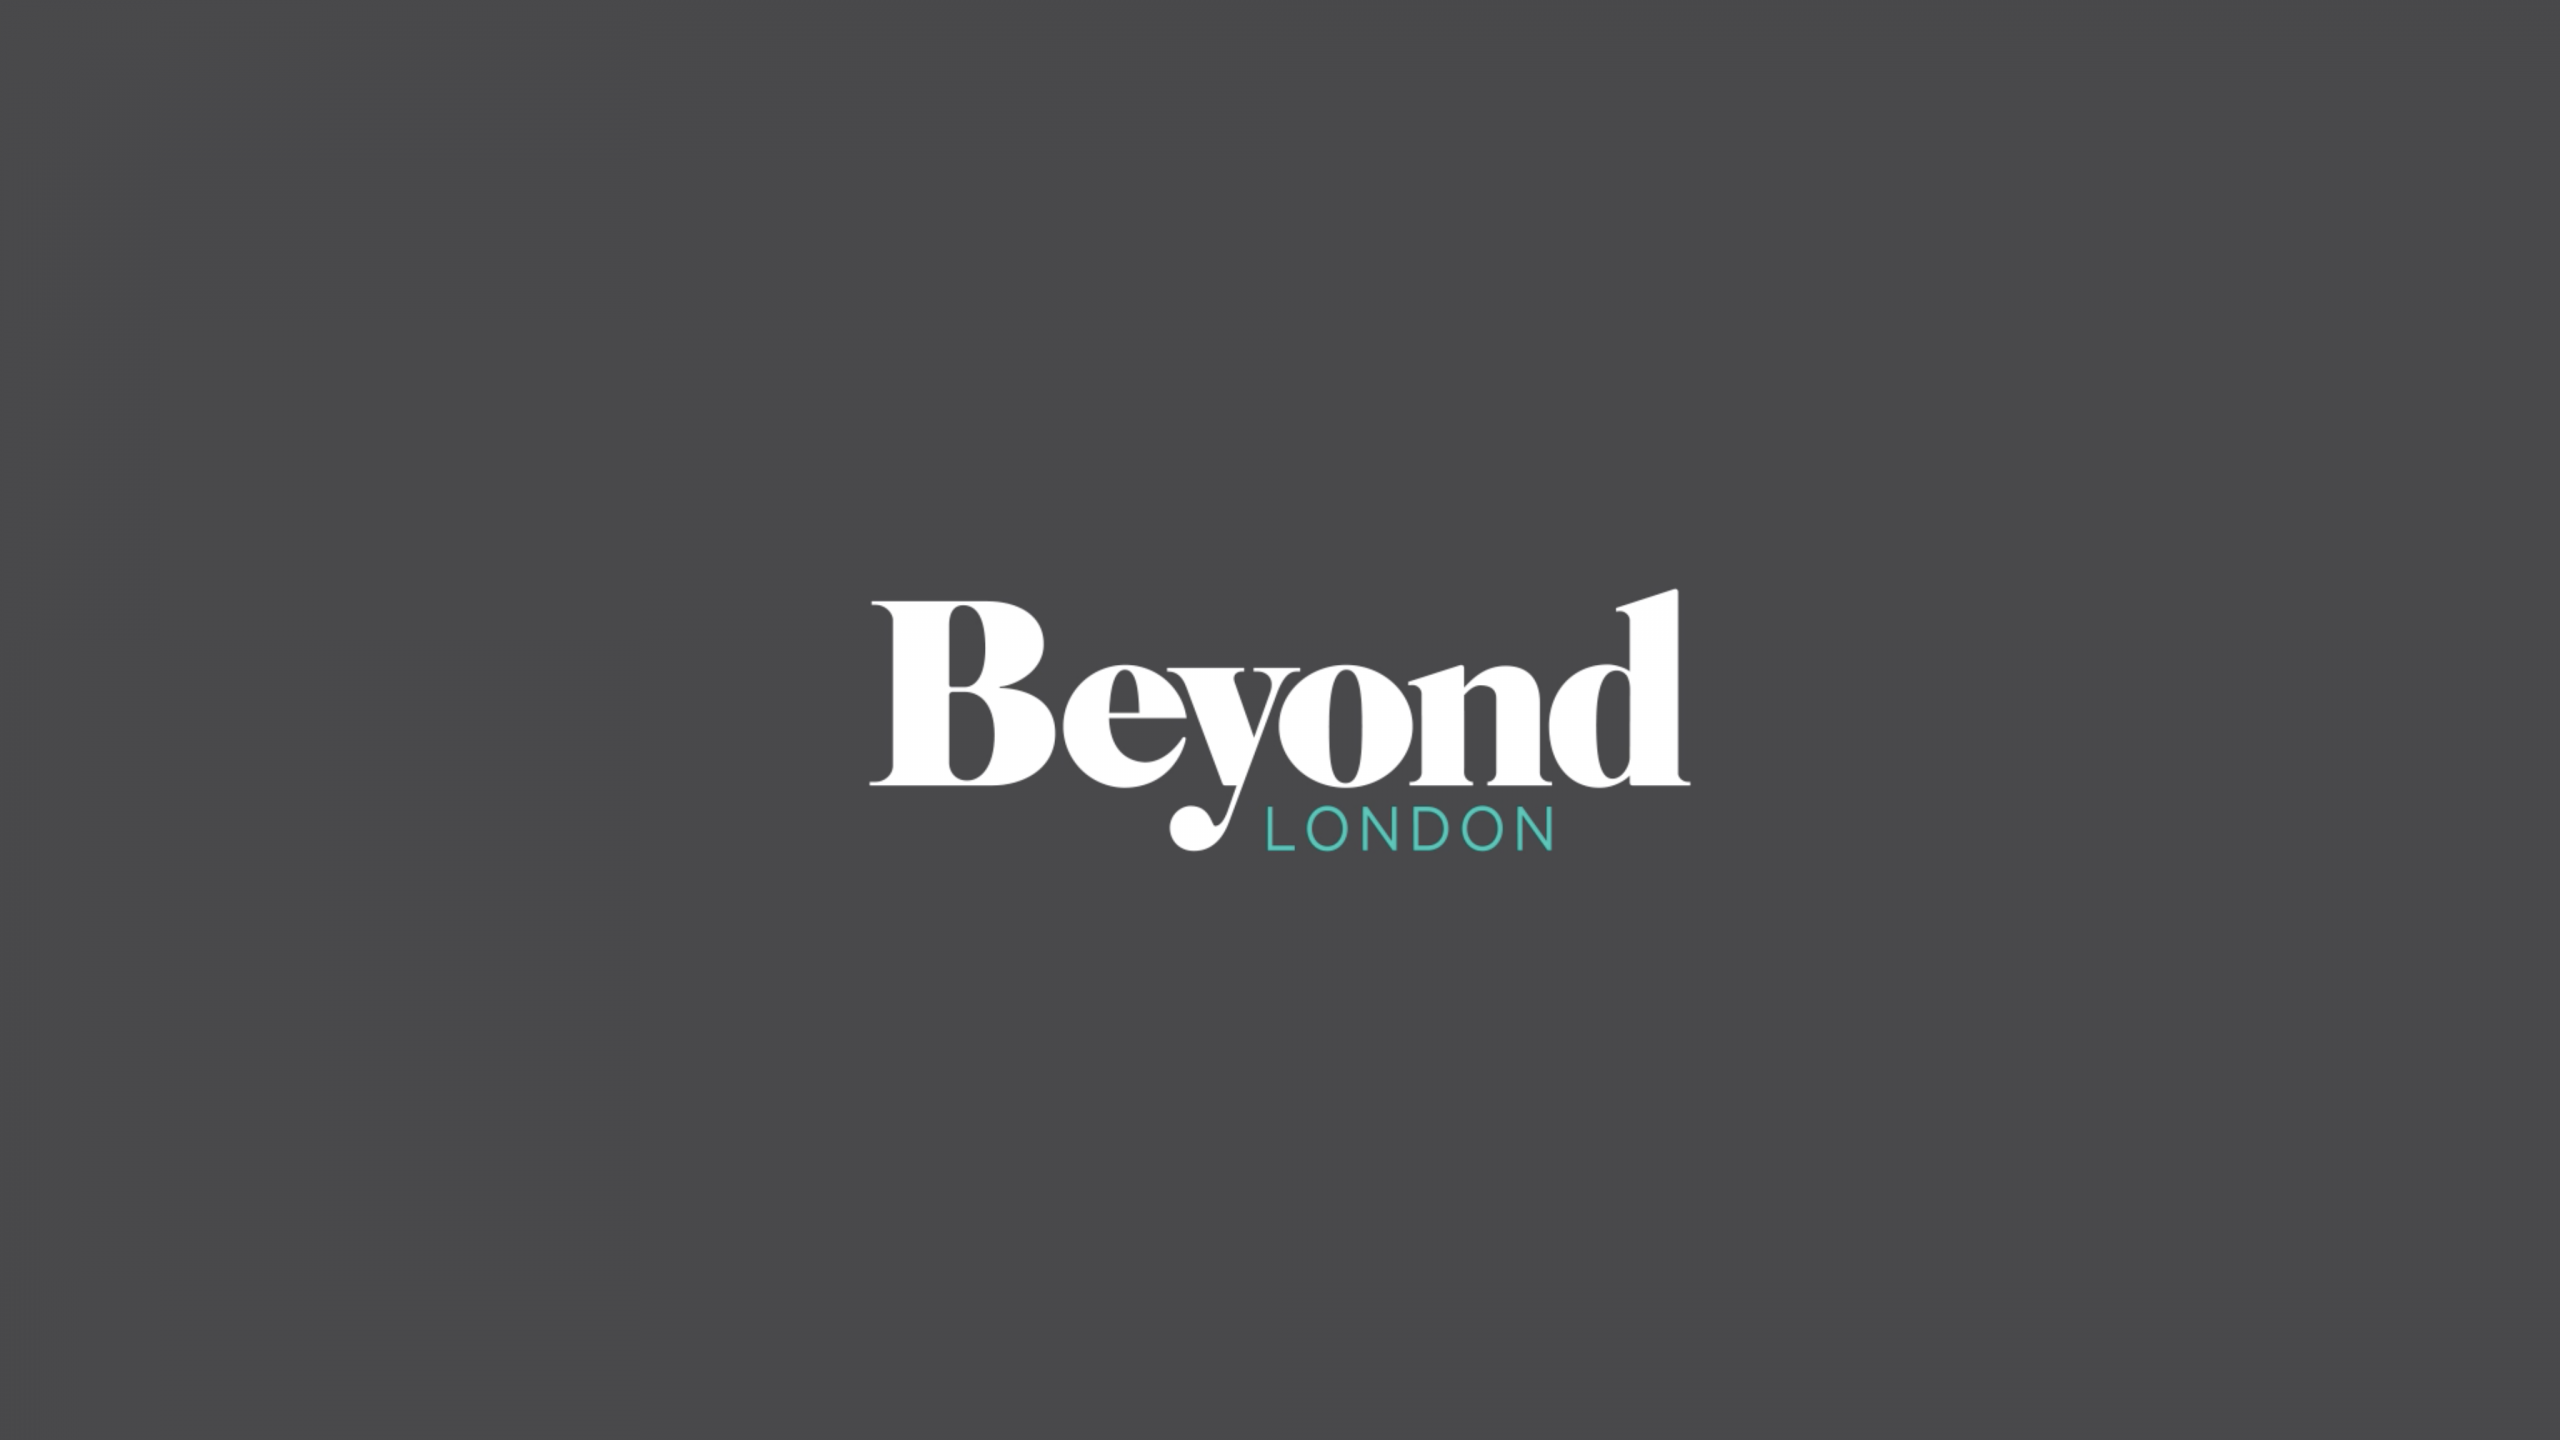 Beyond London home page video still